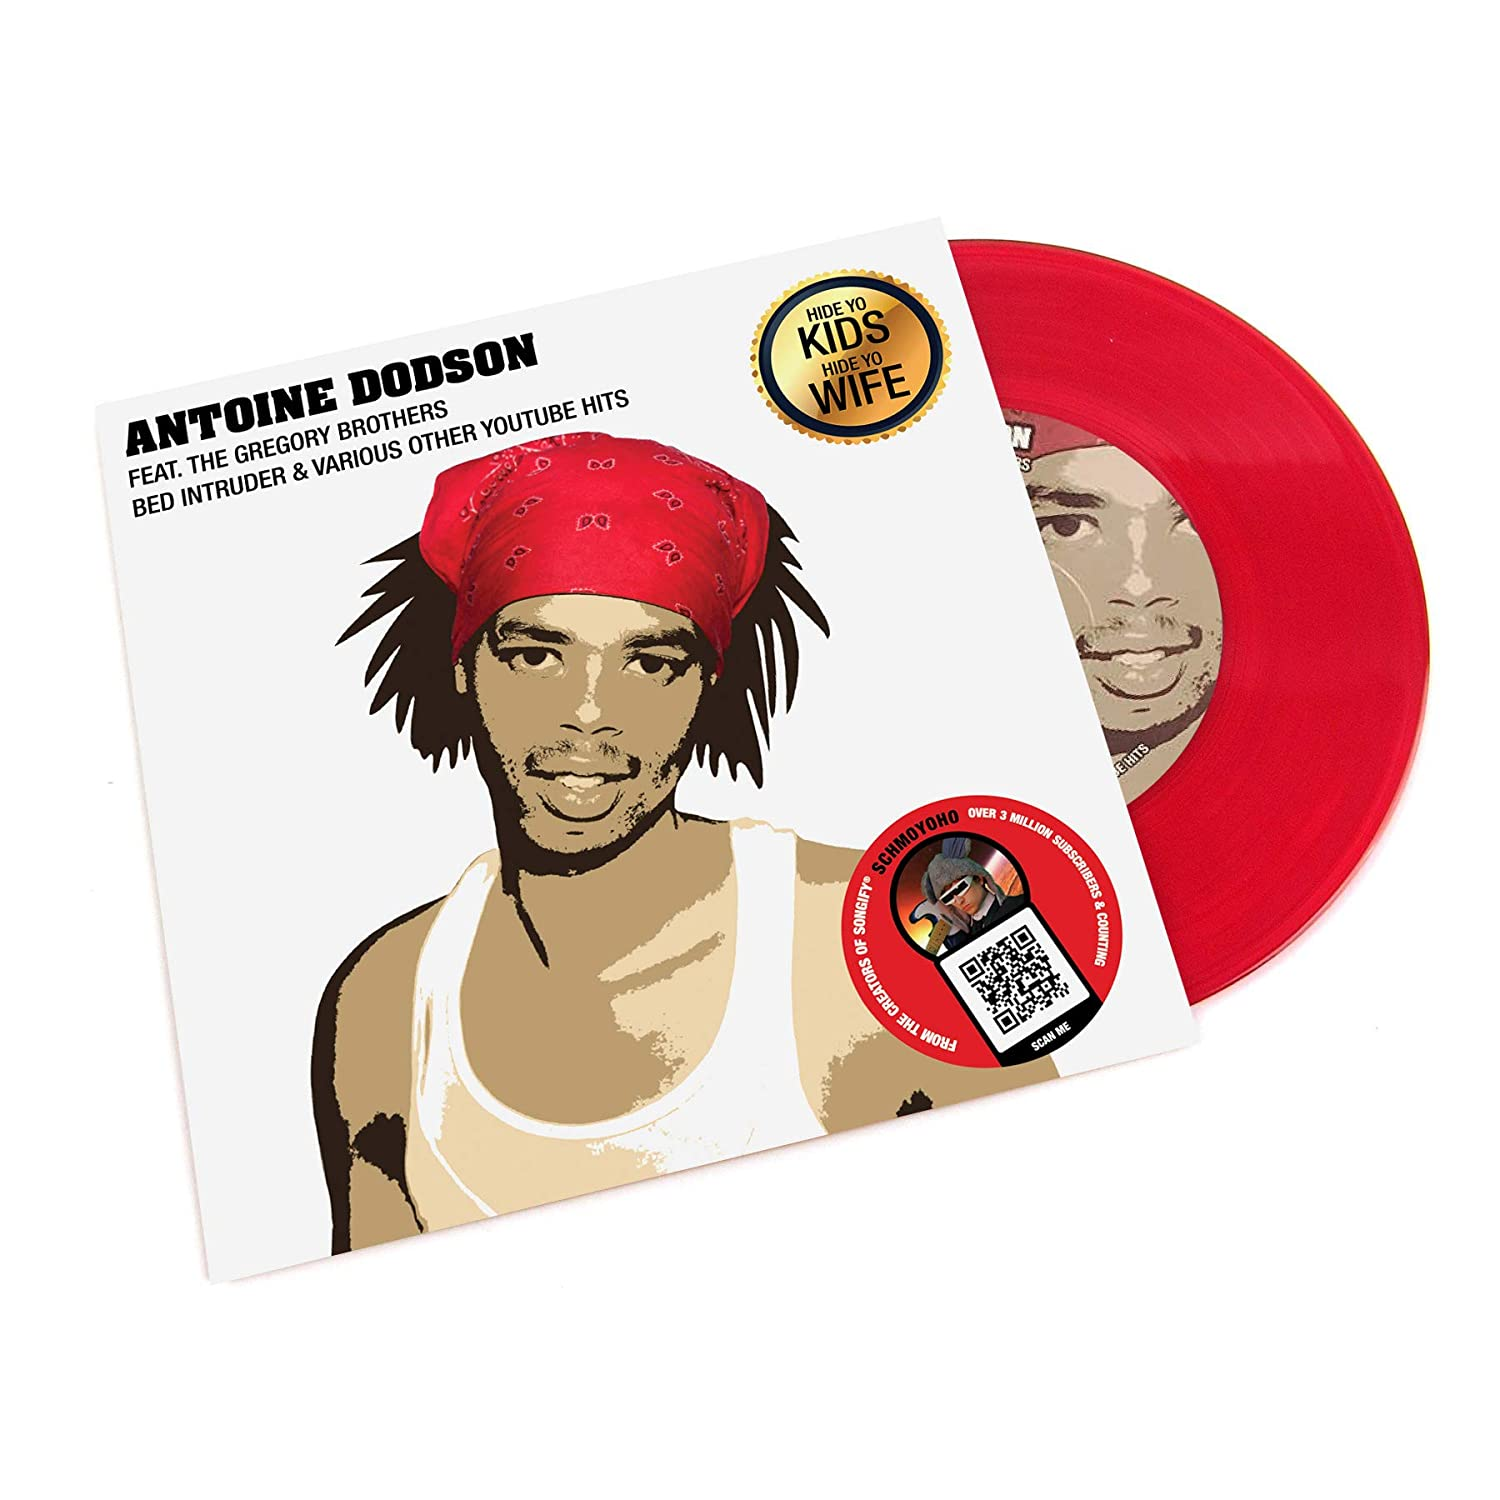 Anton Dobson Feat  The Gregory Brothers - Antoine Dobson